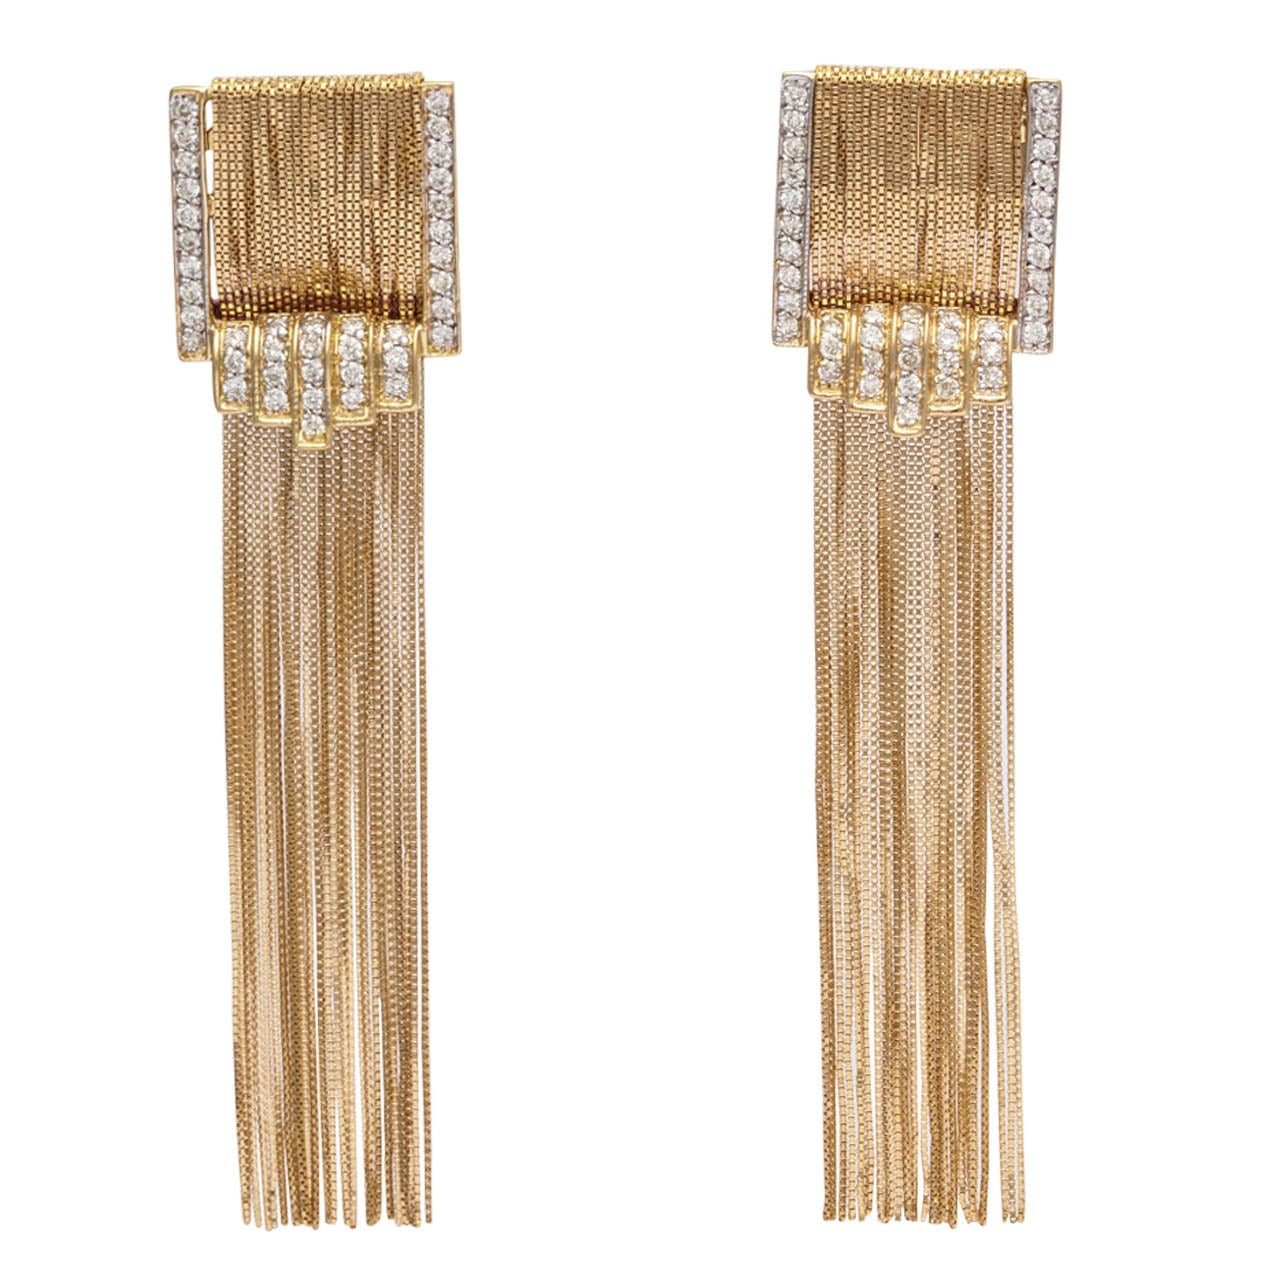 1980s Diamond Gold Tel Fringe Earrings For